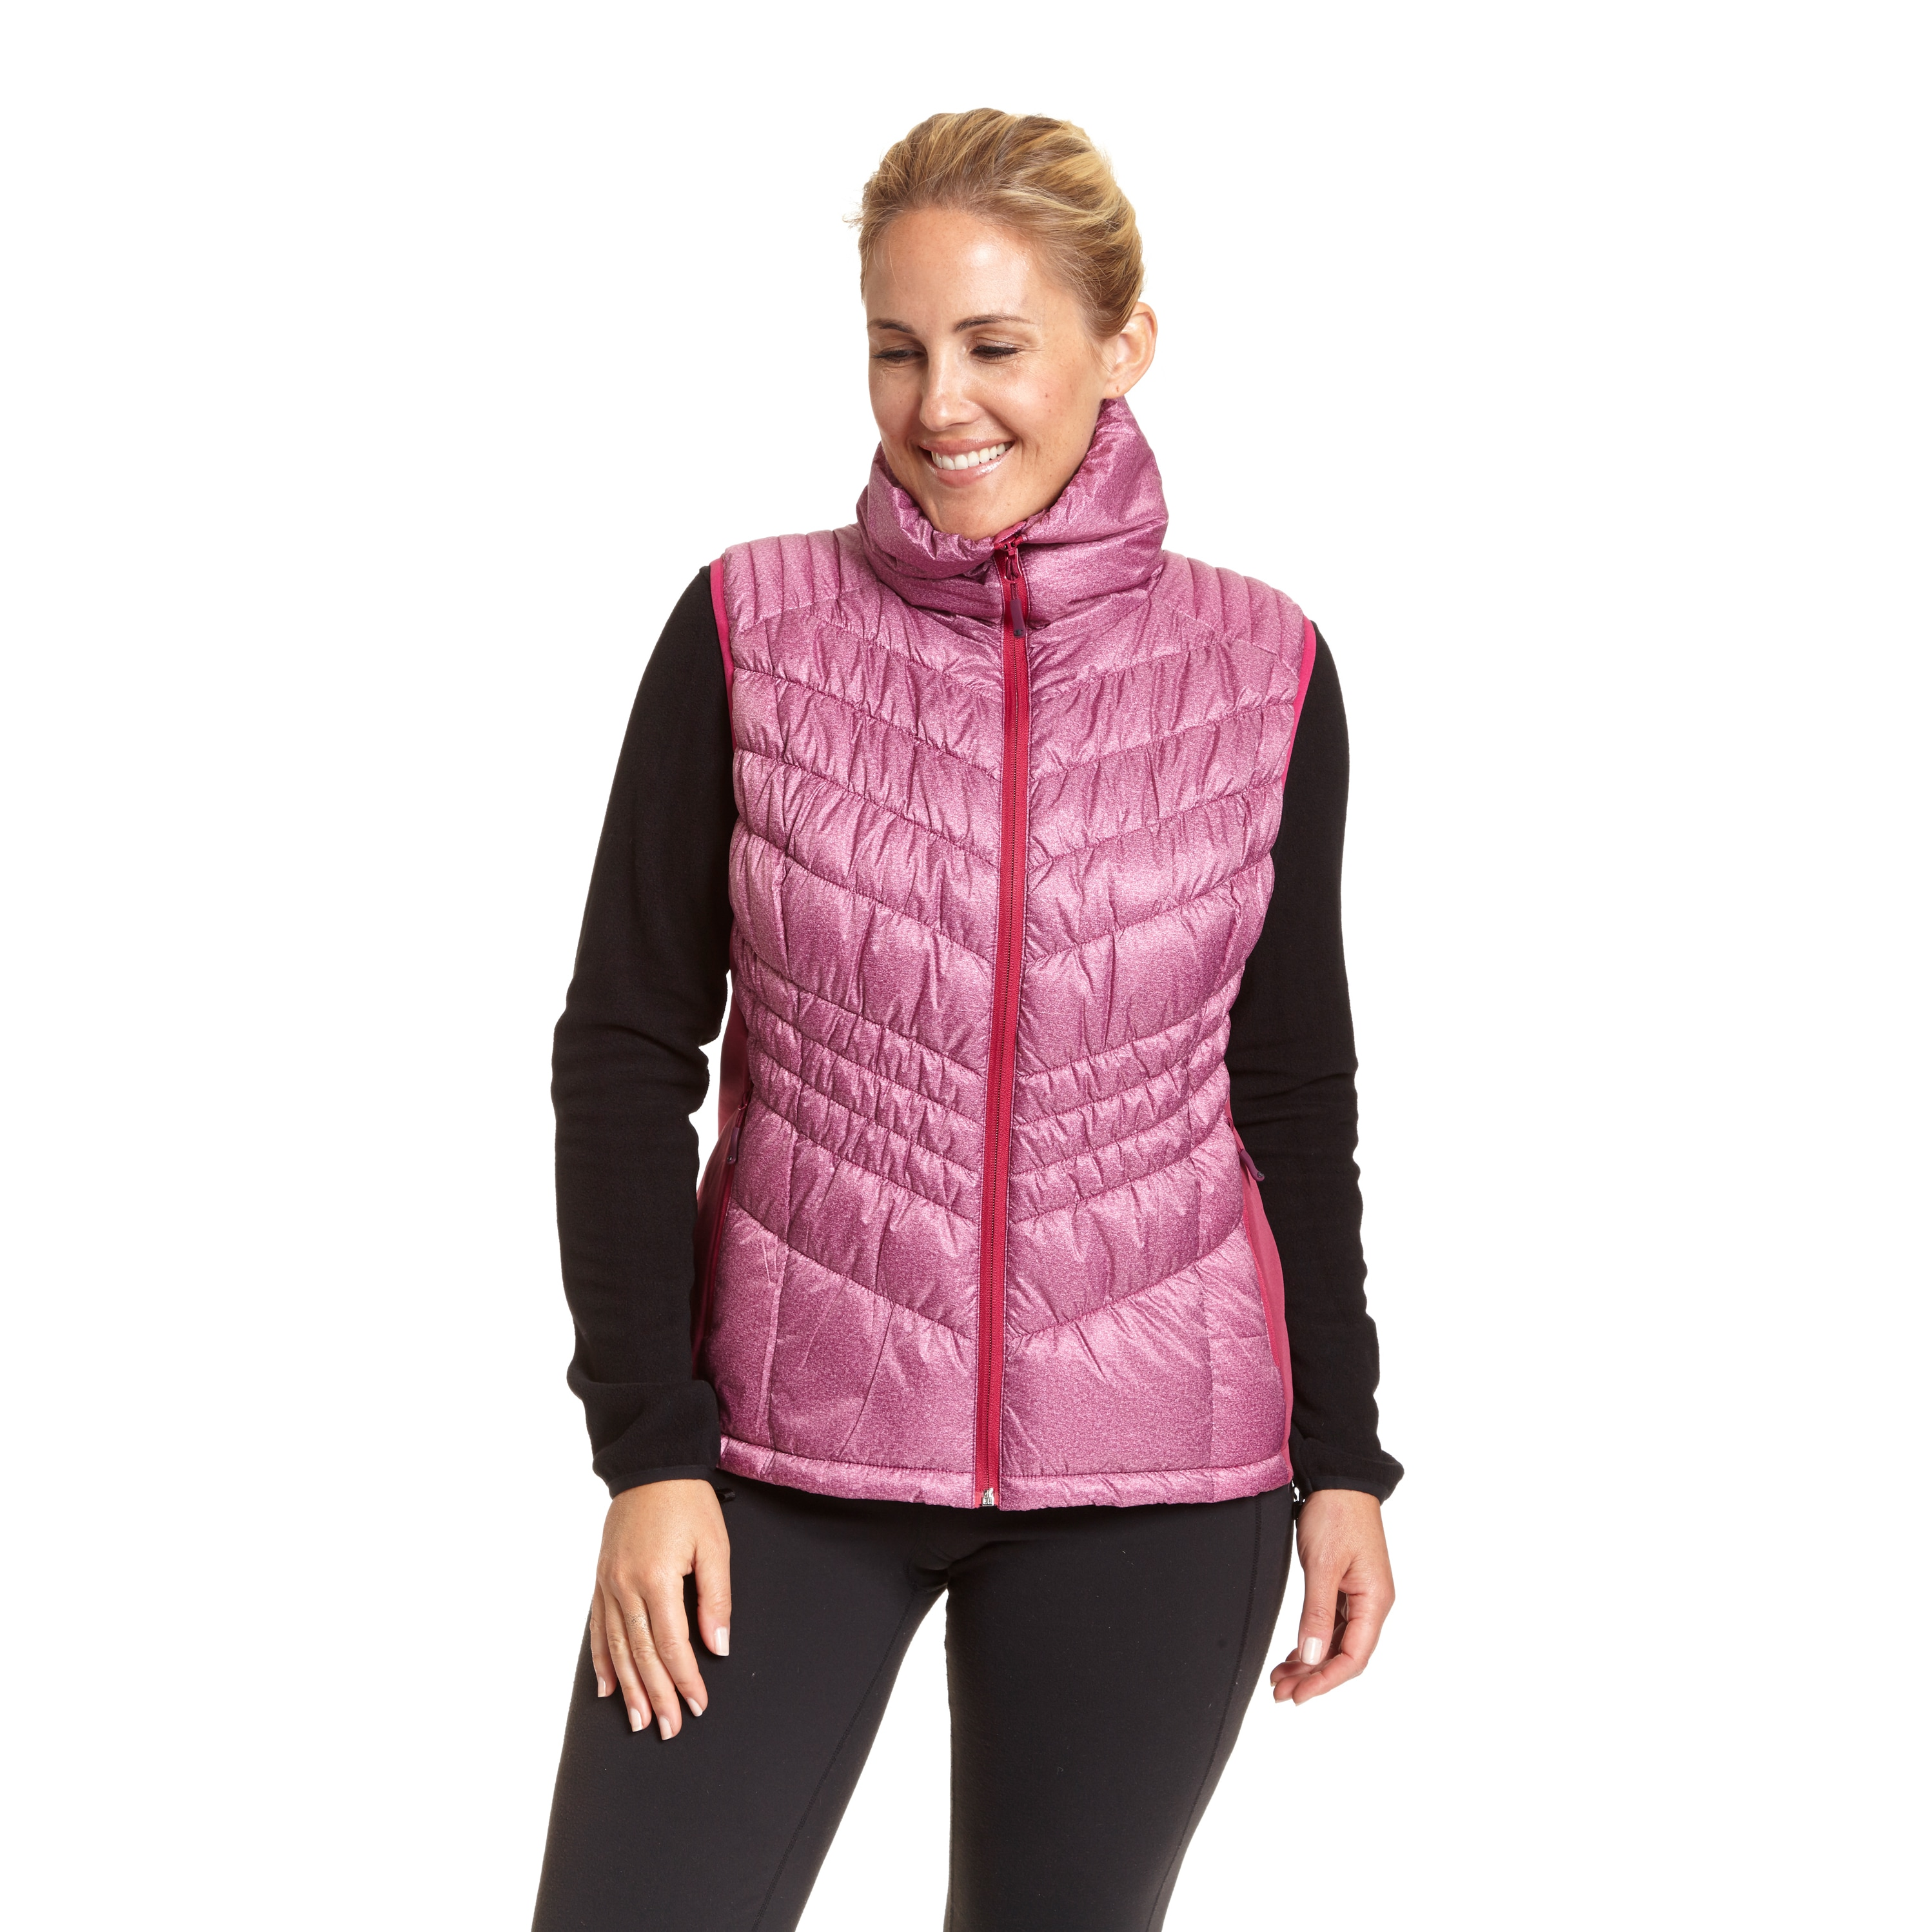 bbc7d4c1beb23 Shop Champion Women s Plus-size Insulated Puffer Vest - Free Shipping On  Orders Over  45 - Overstock - 12382177